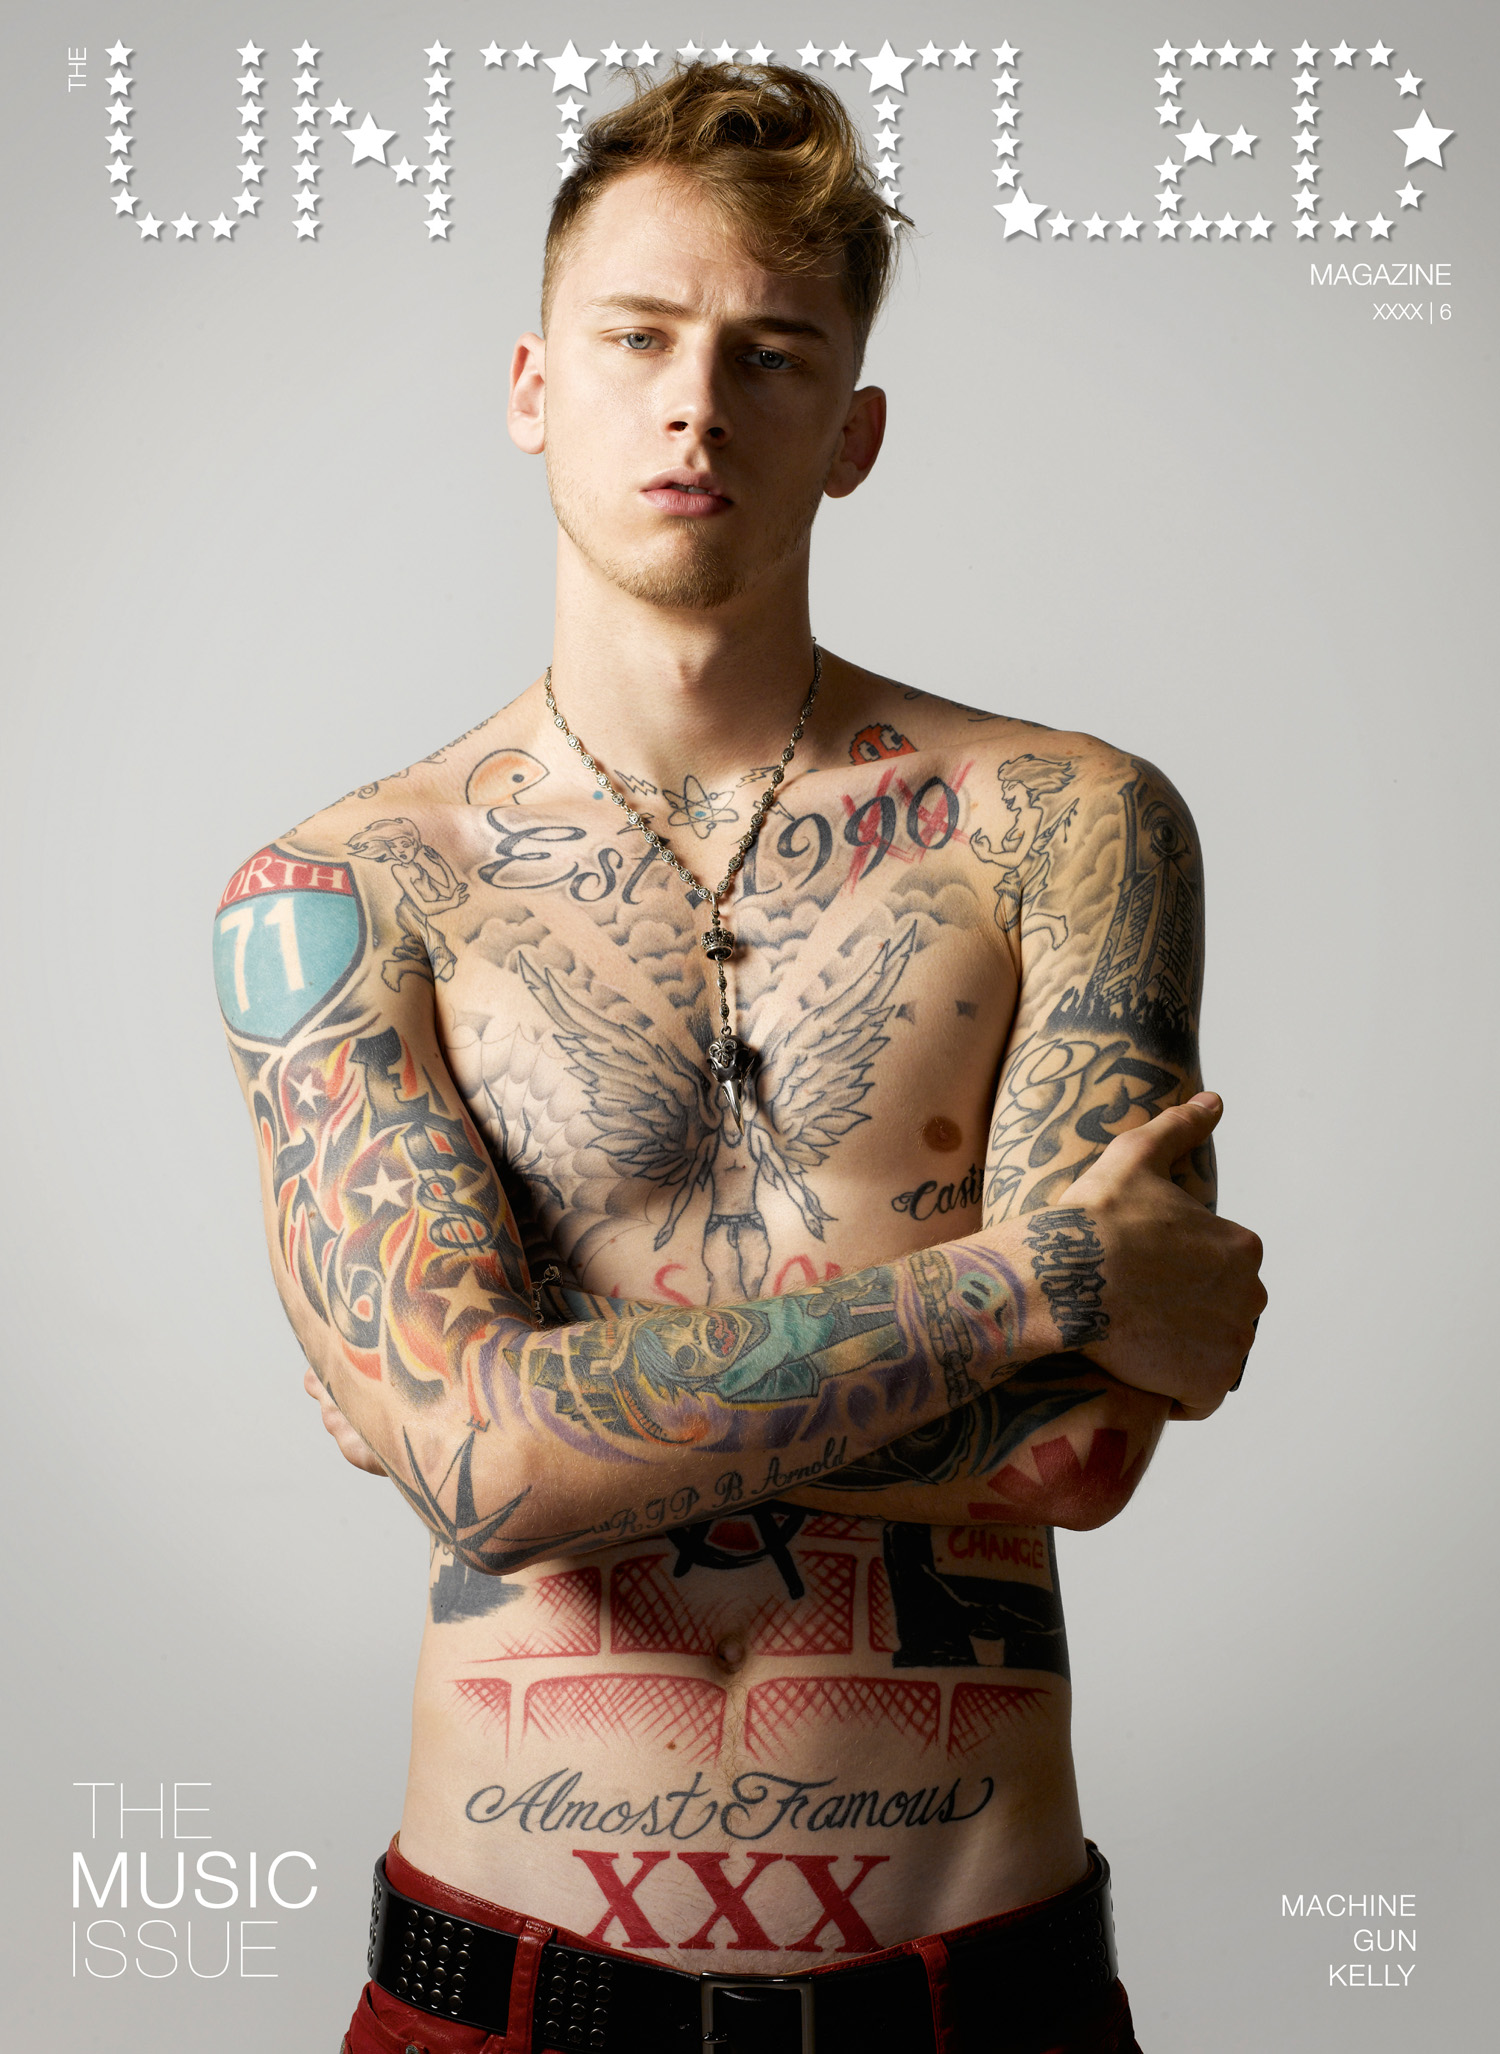 TheUntitledMagazine_Music-6_Machine-Gun-Kelly-photography-by-Indira_Cesarine-LR.jpg